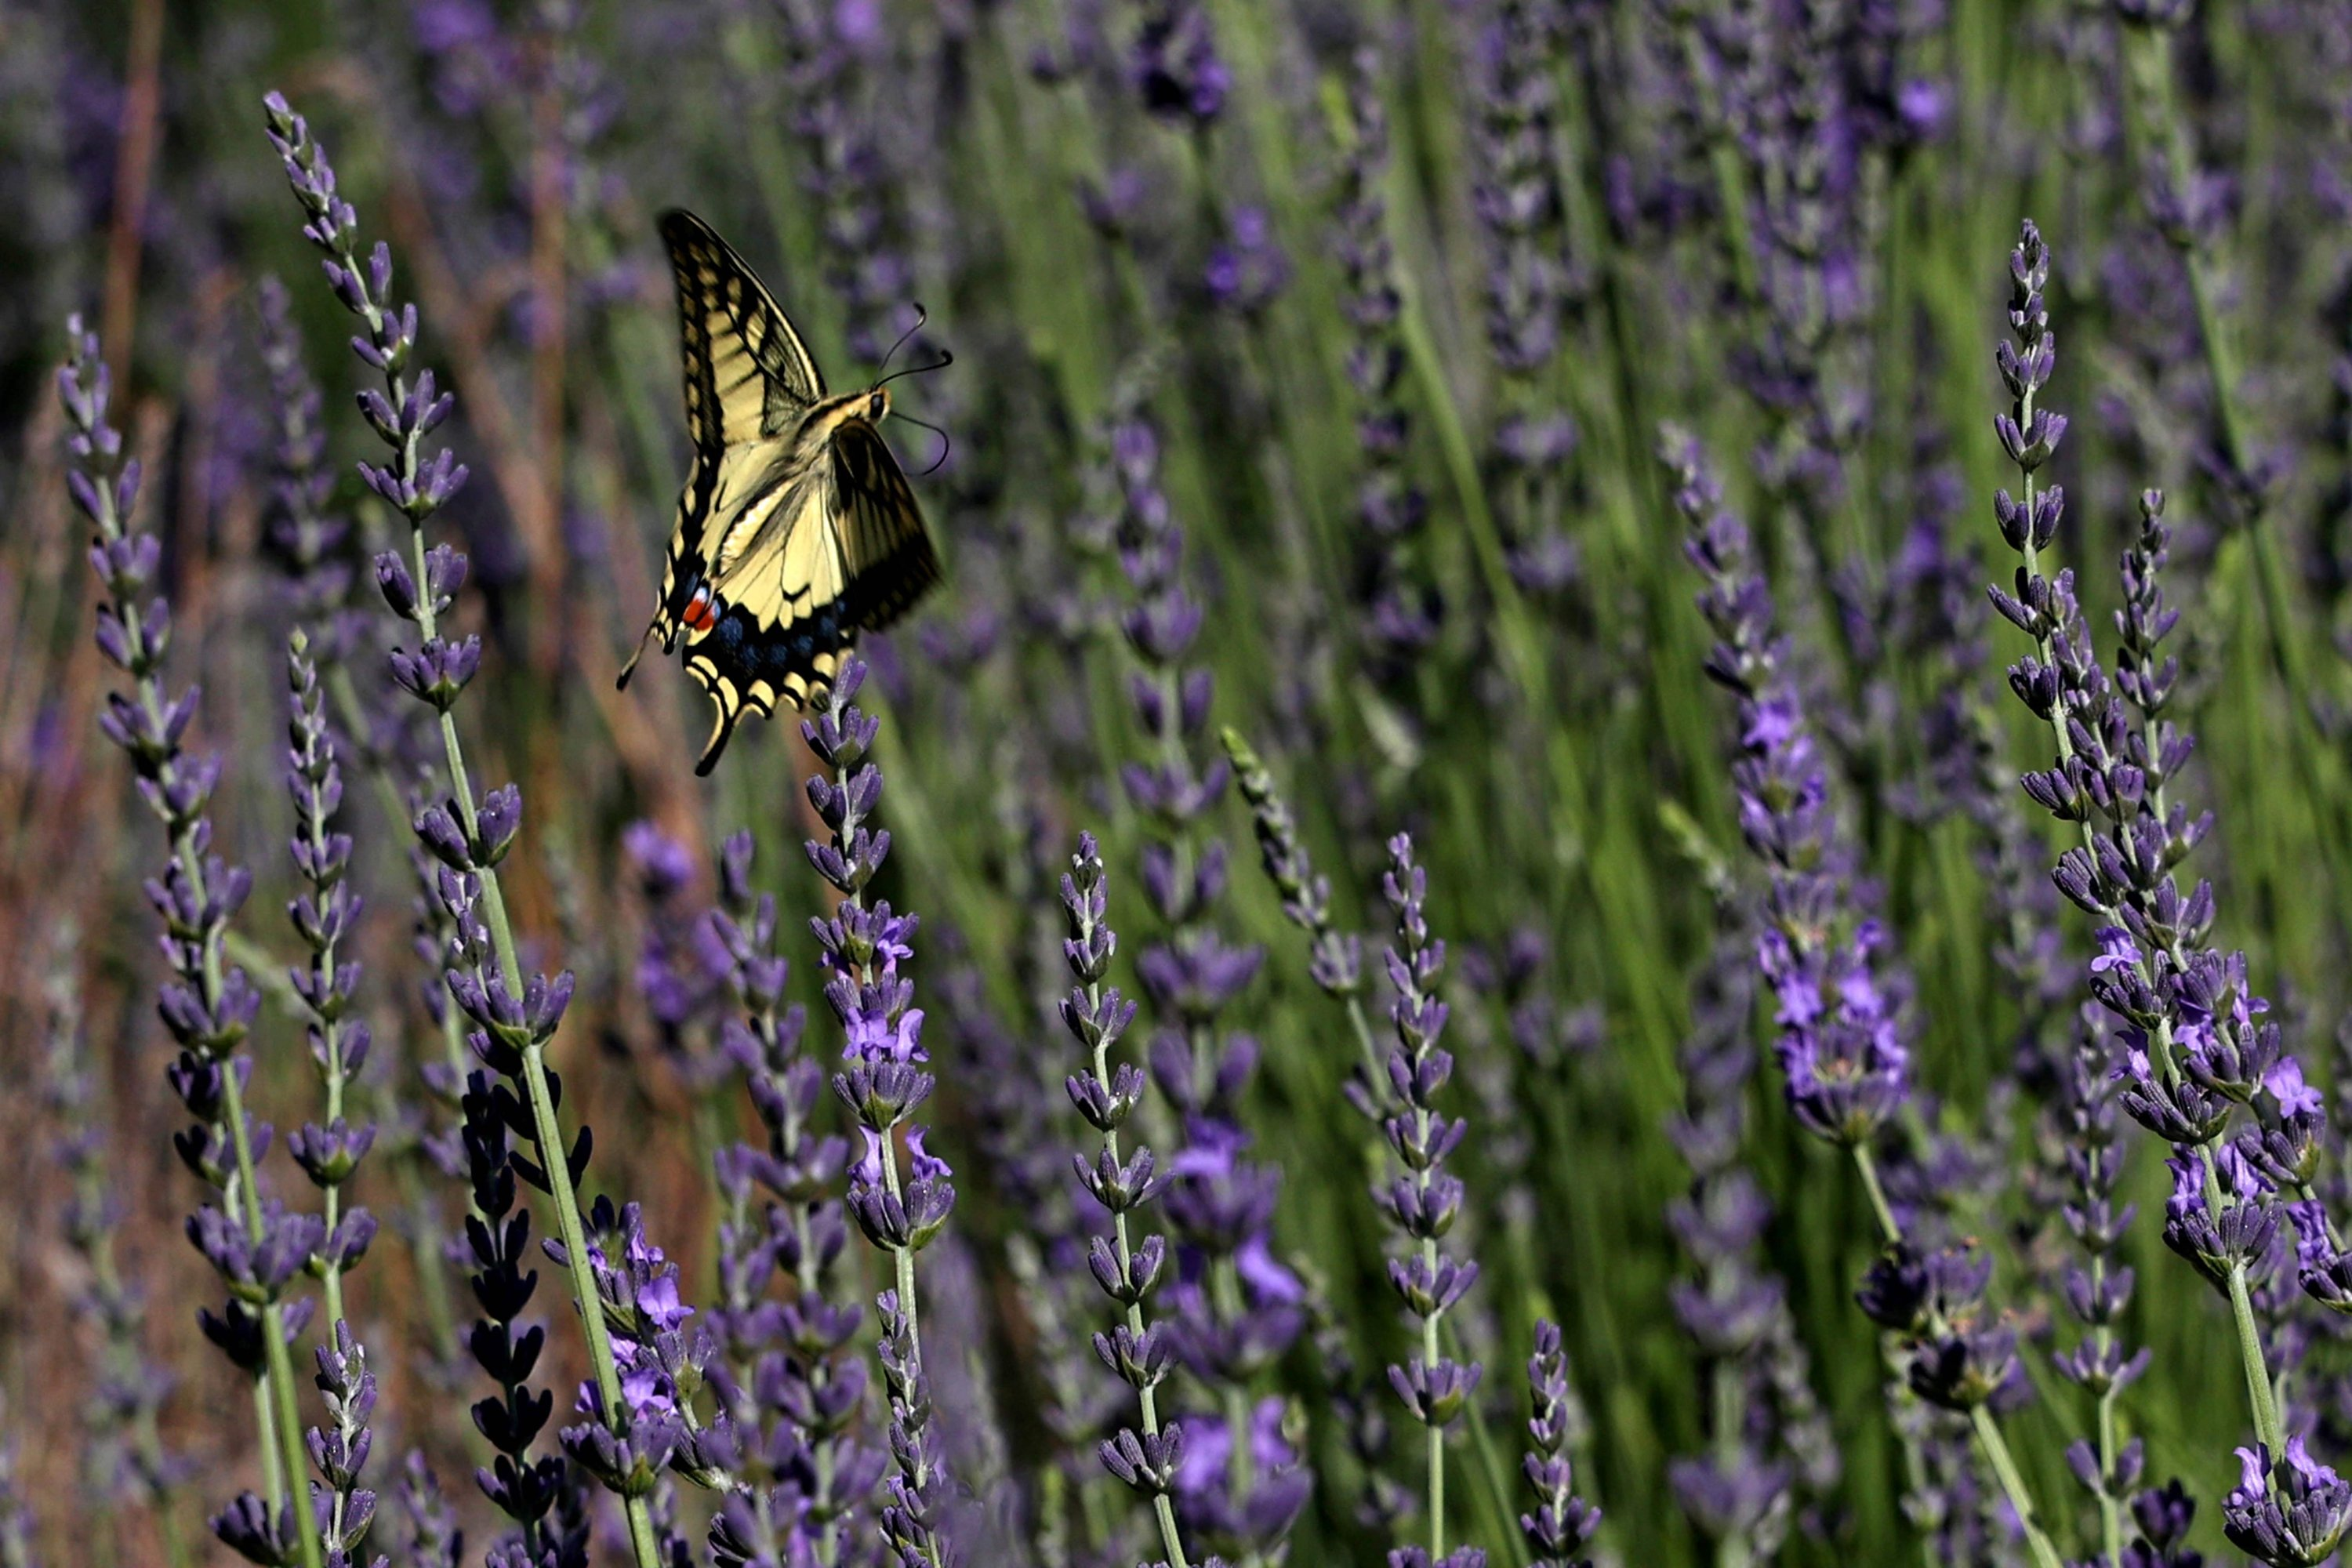 A butterfly flies over lavender plants at Cyherbia botanical park in the Cypriot village of Avgorou in southwestern Famagusta District, Cyprus, June 8, 2021. (AFP Photo)